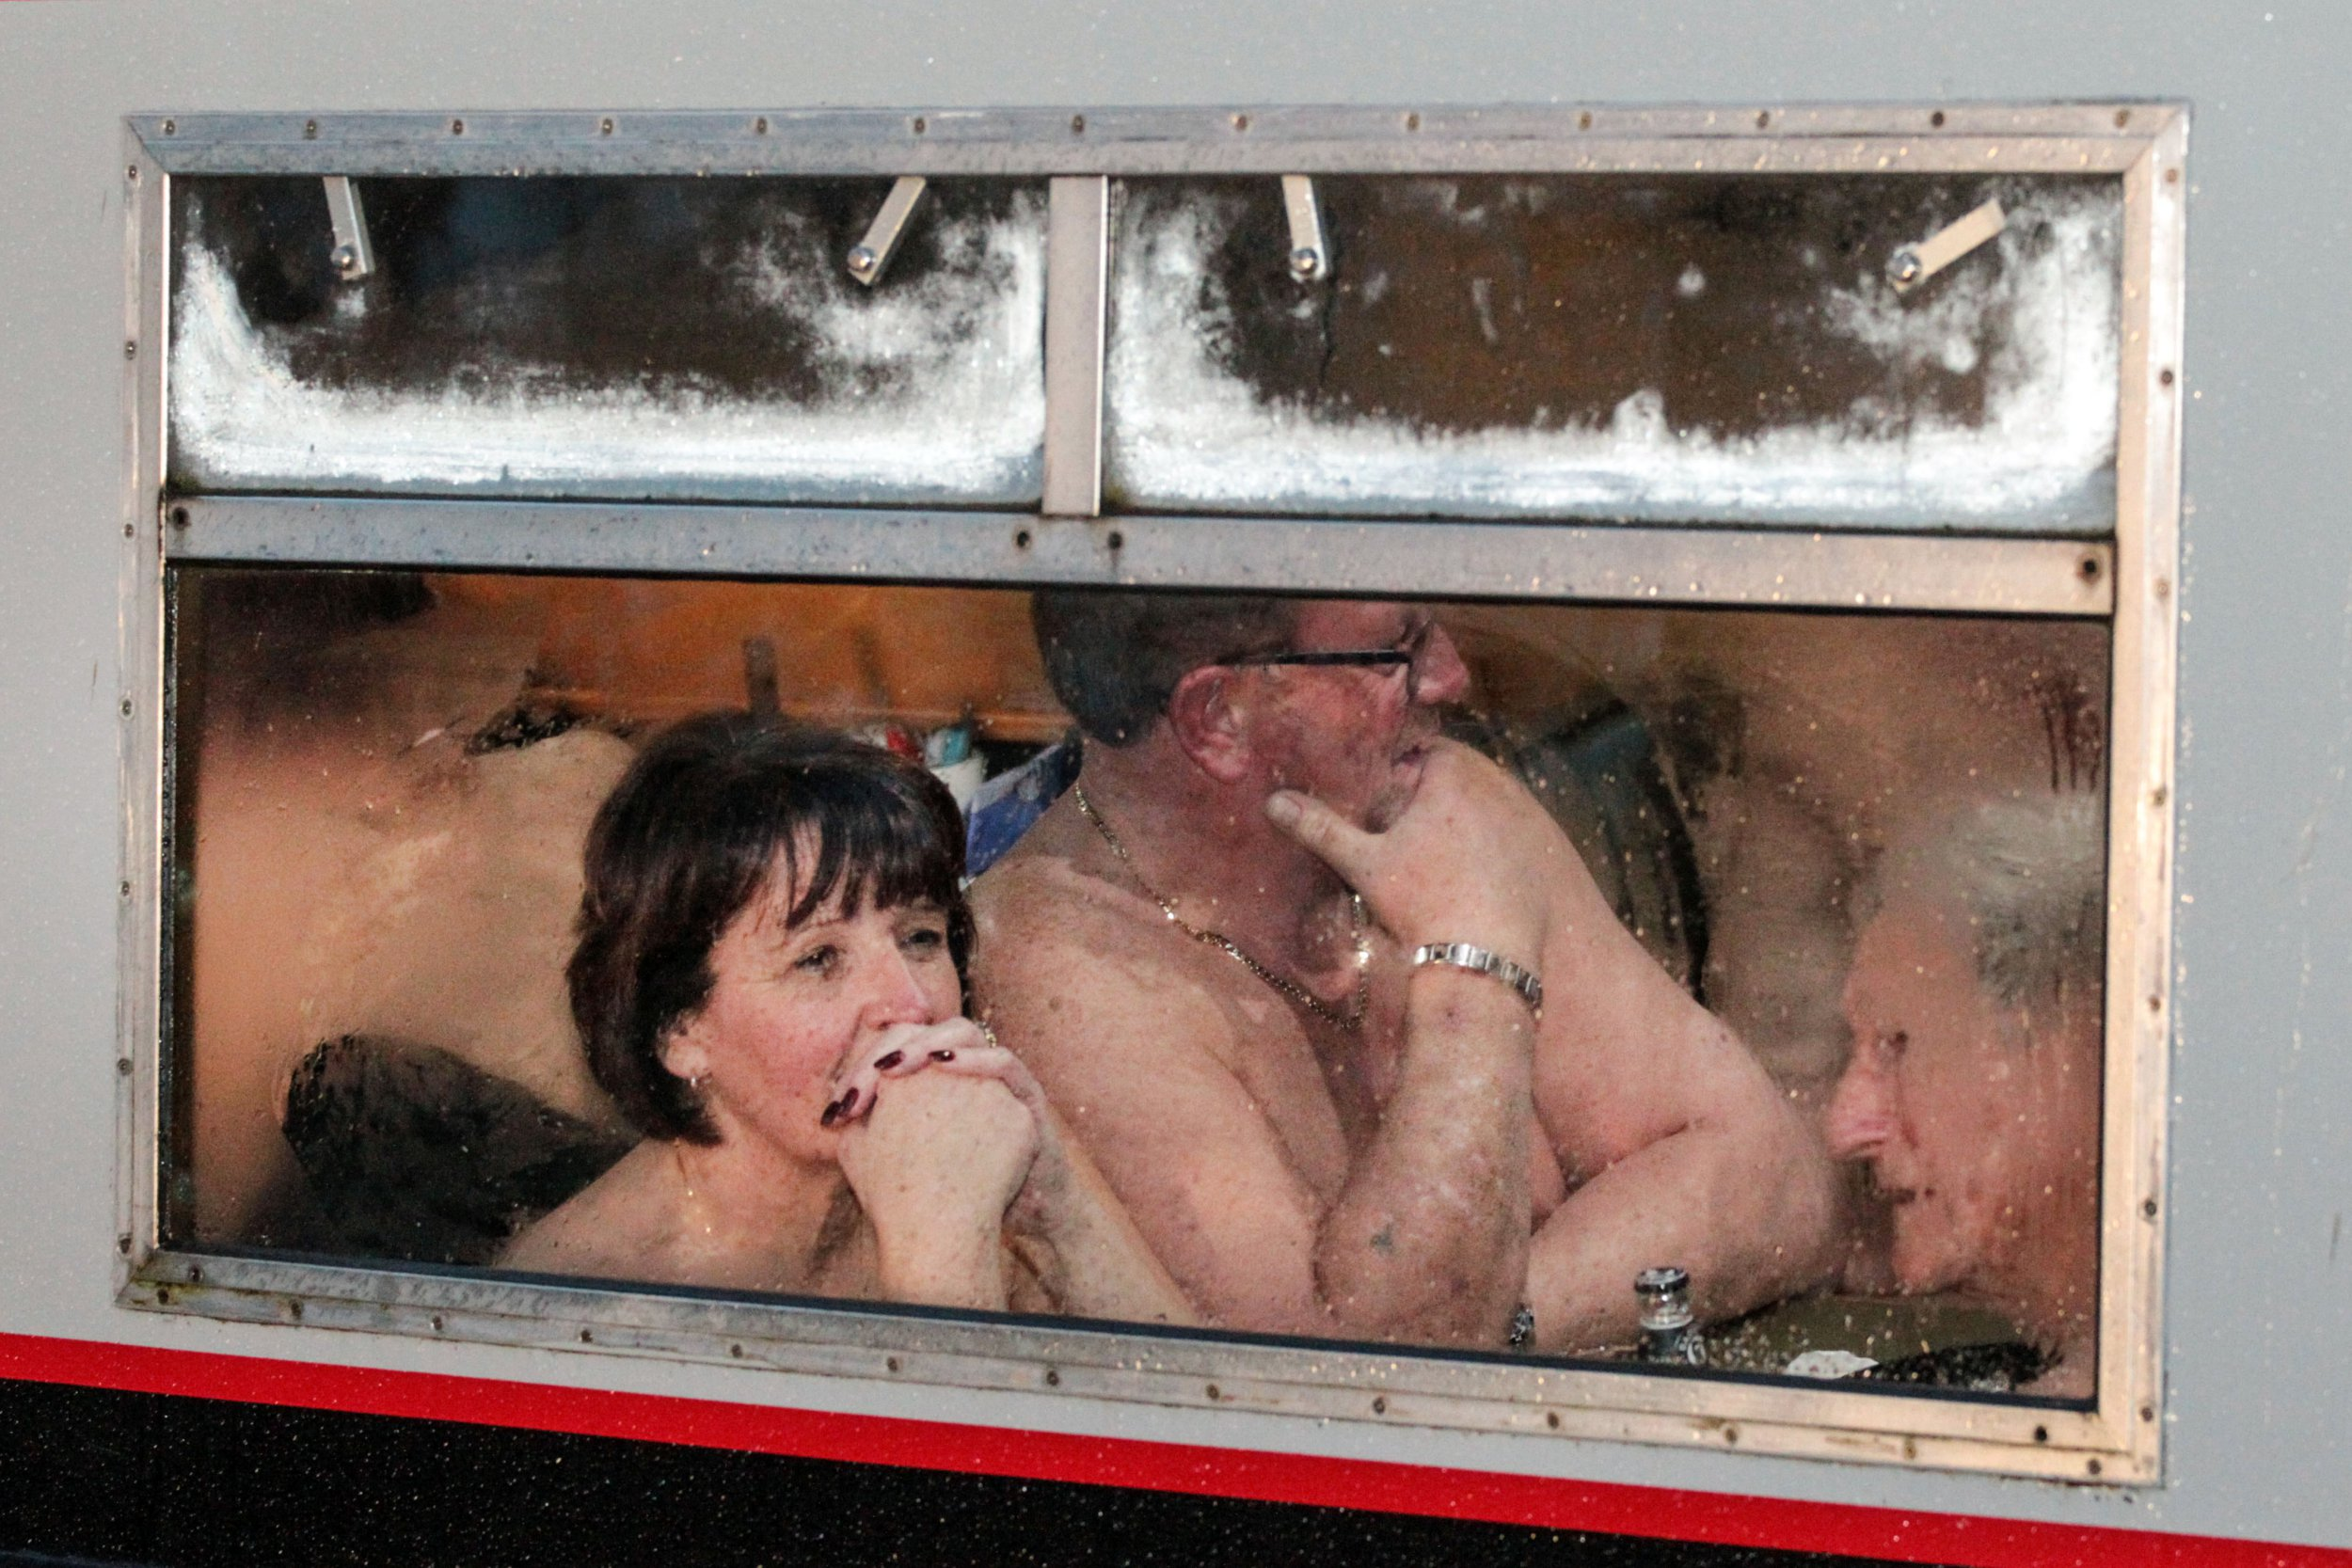 Nudists enjoy fish and chip dinner on naked canal cruise